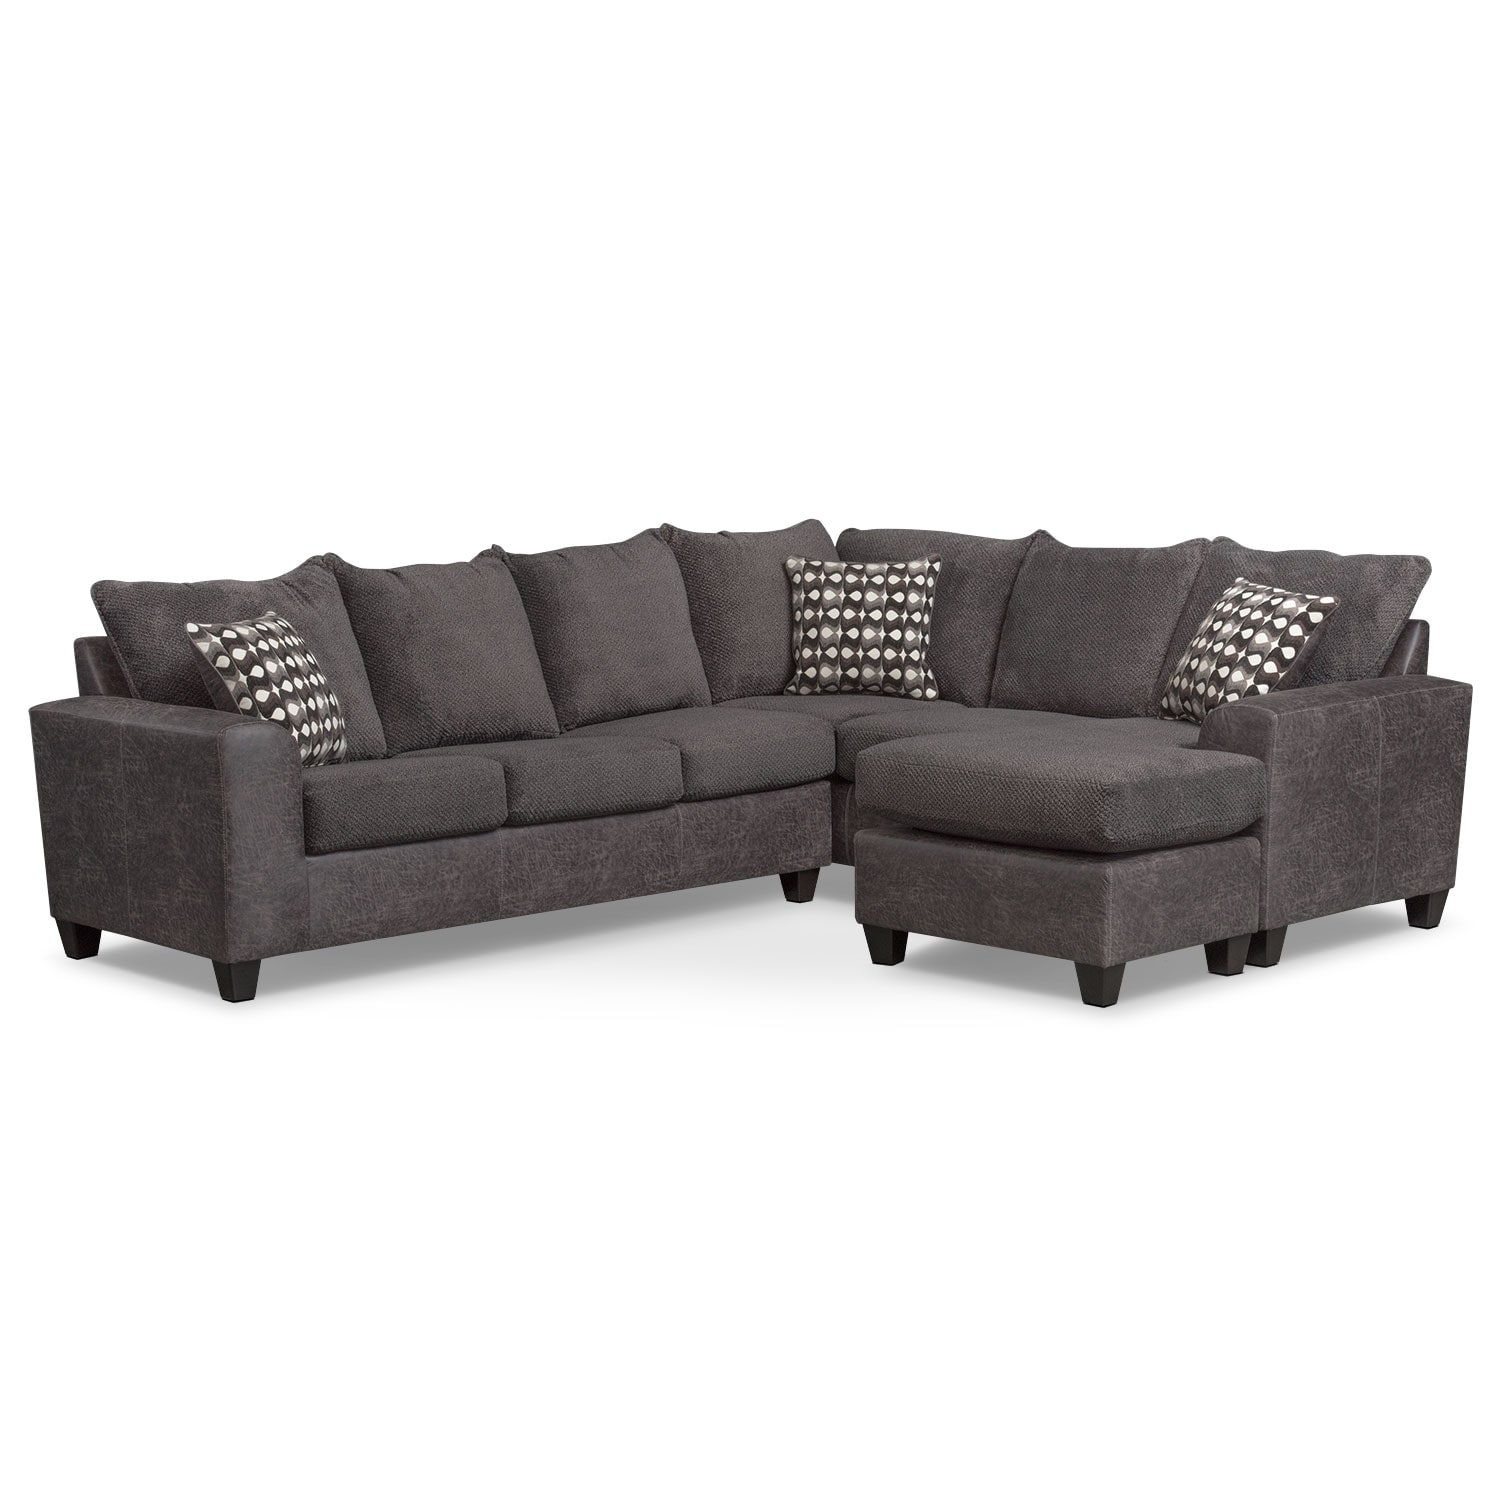 Living Room Furniture - Brando 3-Piece Sleeper Sectional